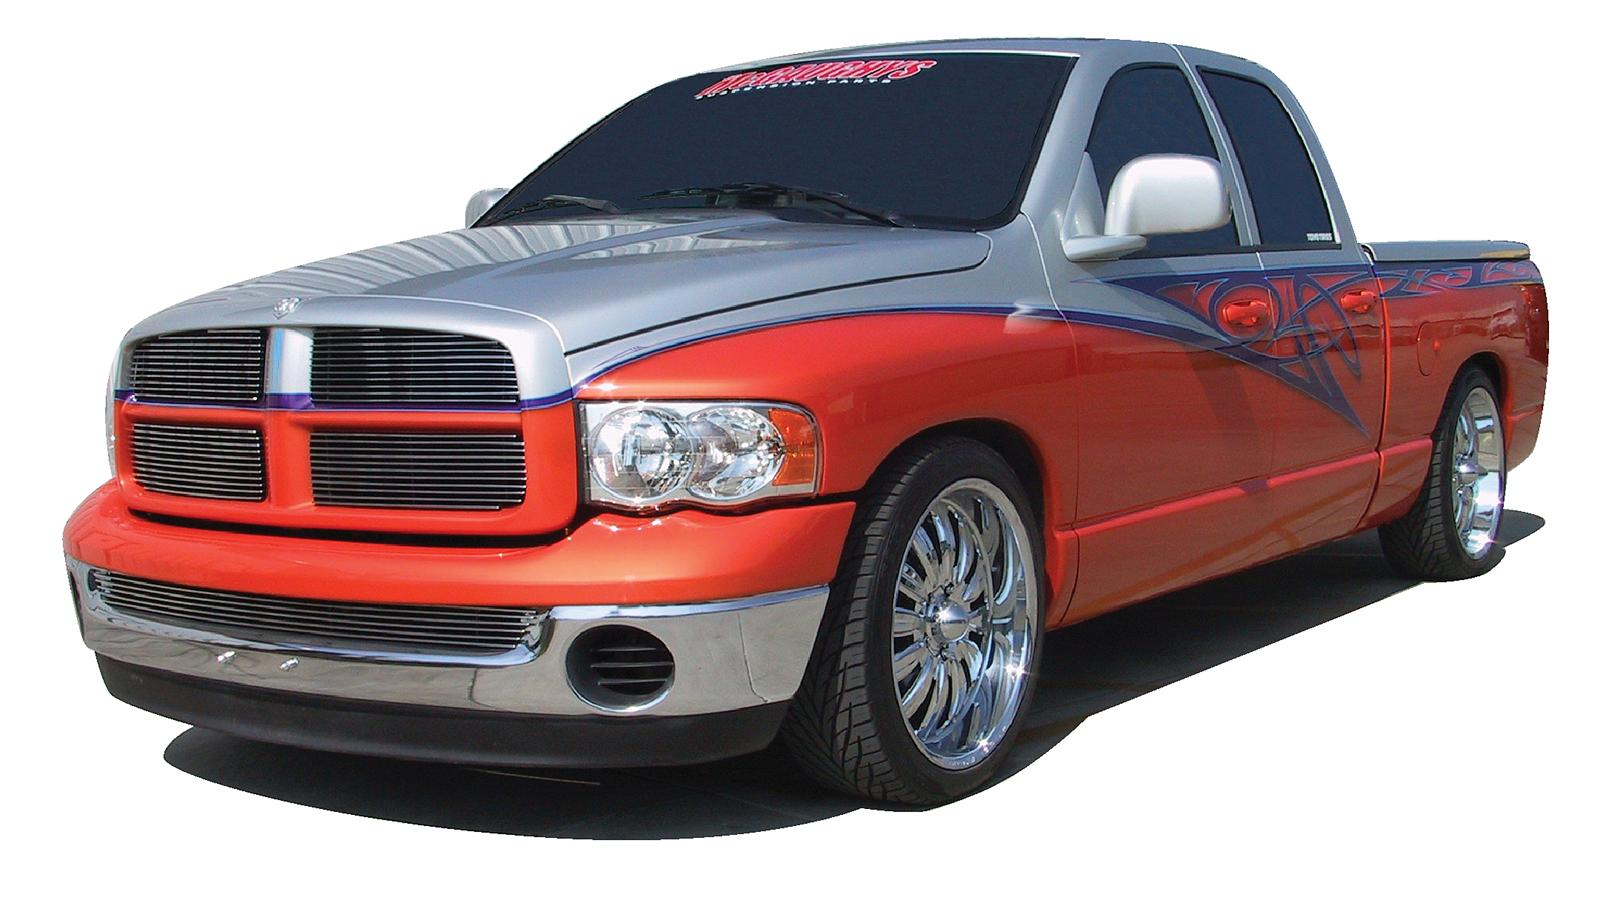 MCGaughy's 2/4.5 Drop Kit 02-05 Dodge Ram 1500 RC 2WD